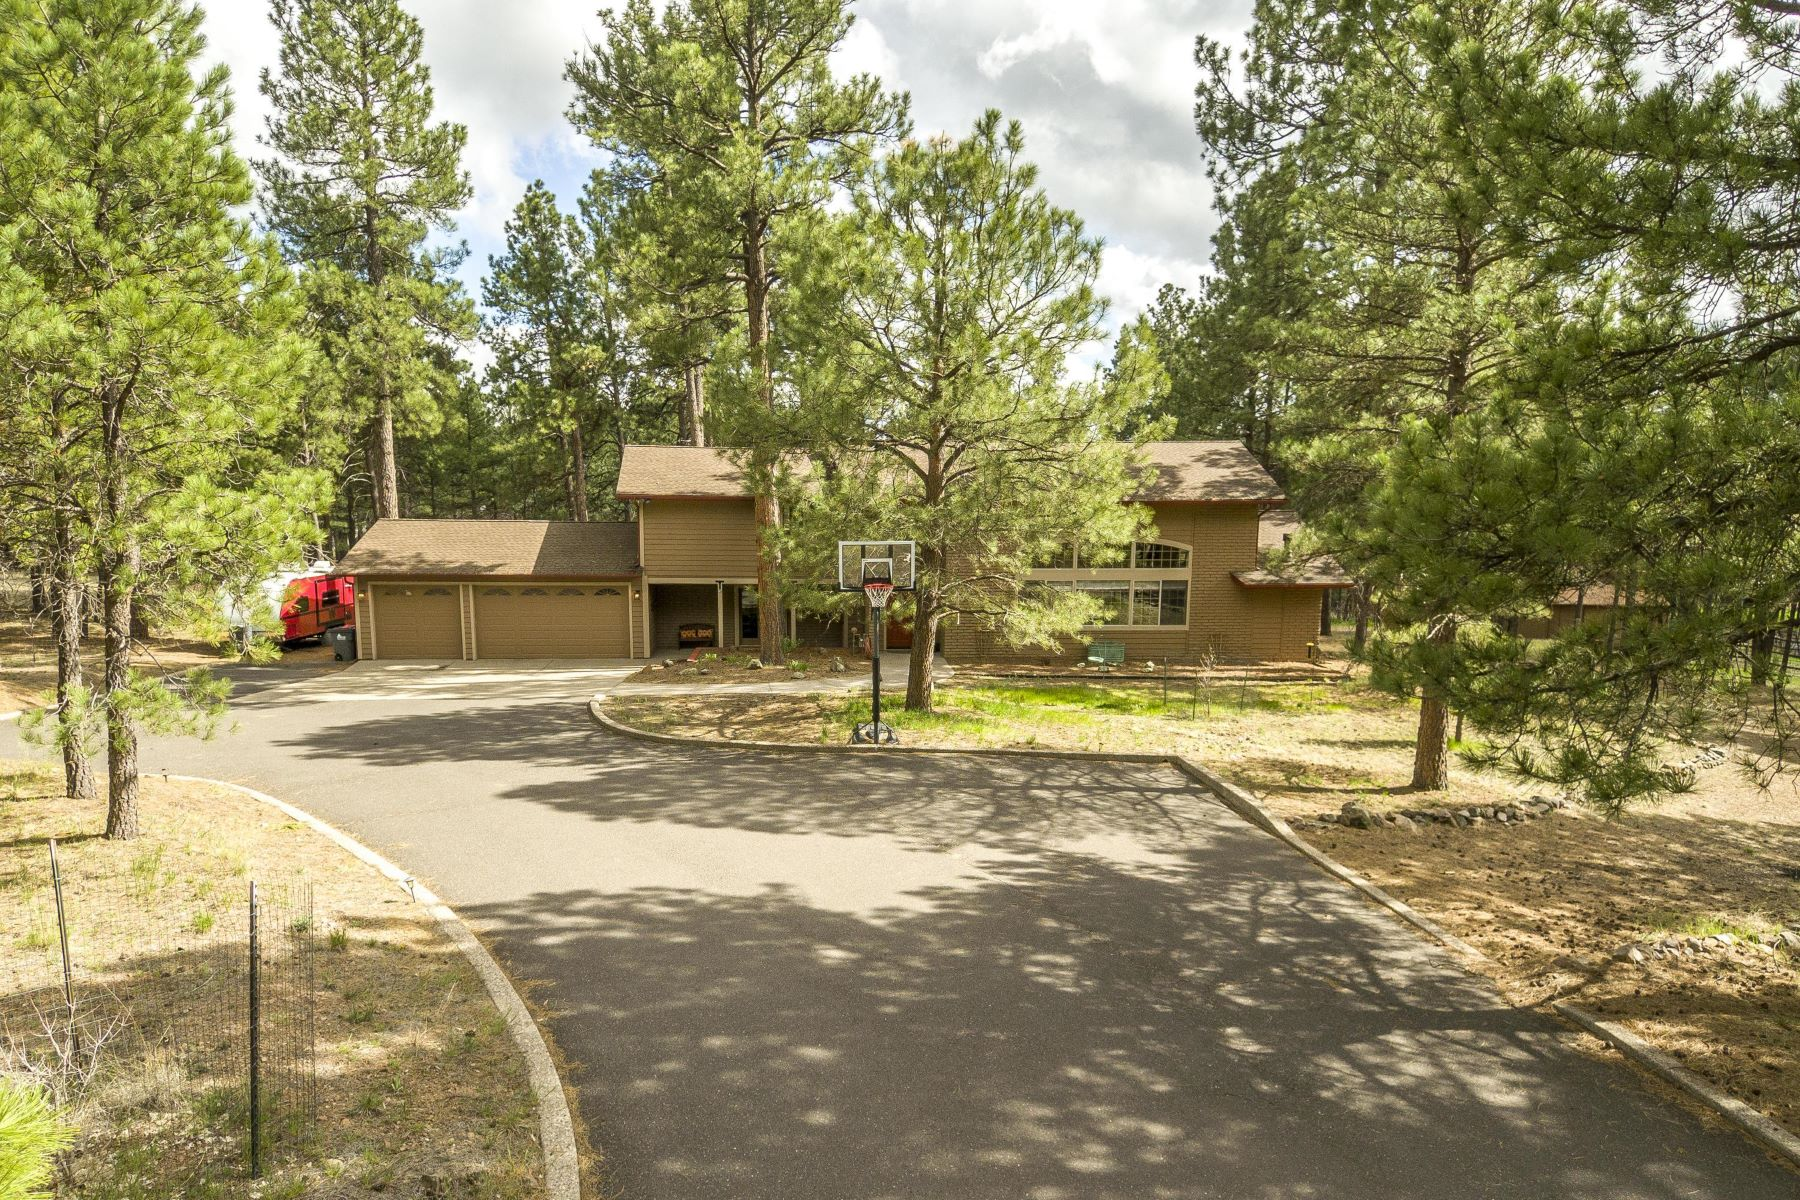 Single Family Homes for Active at Peaceful Mountain Retreat 5200 Magdalena RD Flagstaff, Arizona 86001 United States